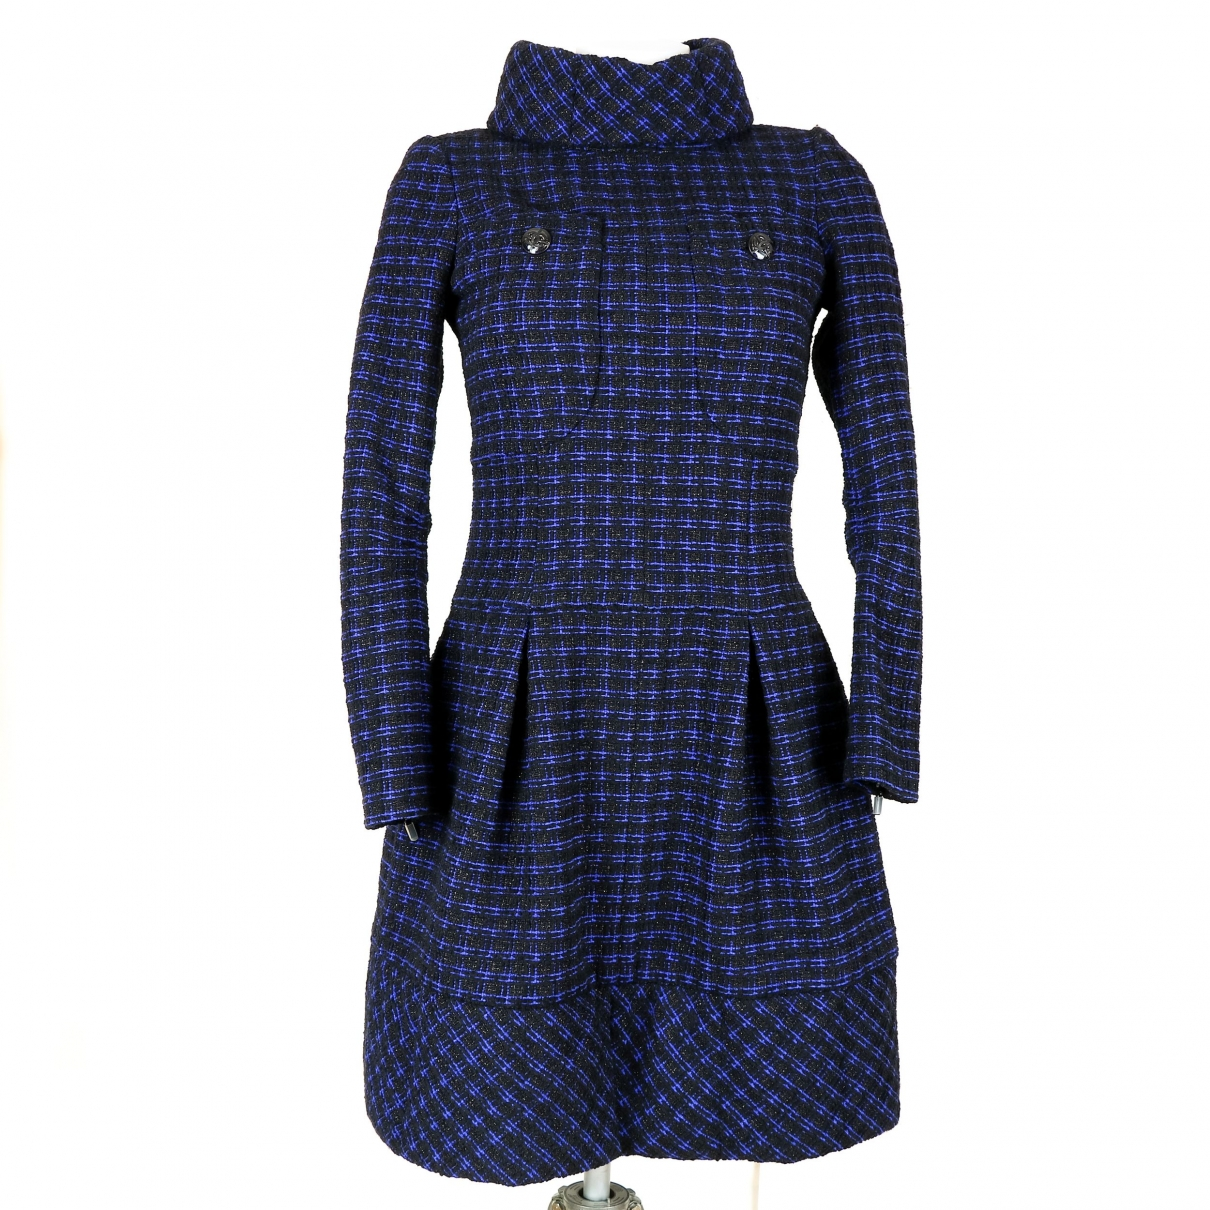 Chanel \N Blue Wool dress for Women 34 FR